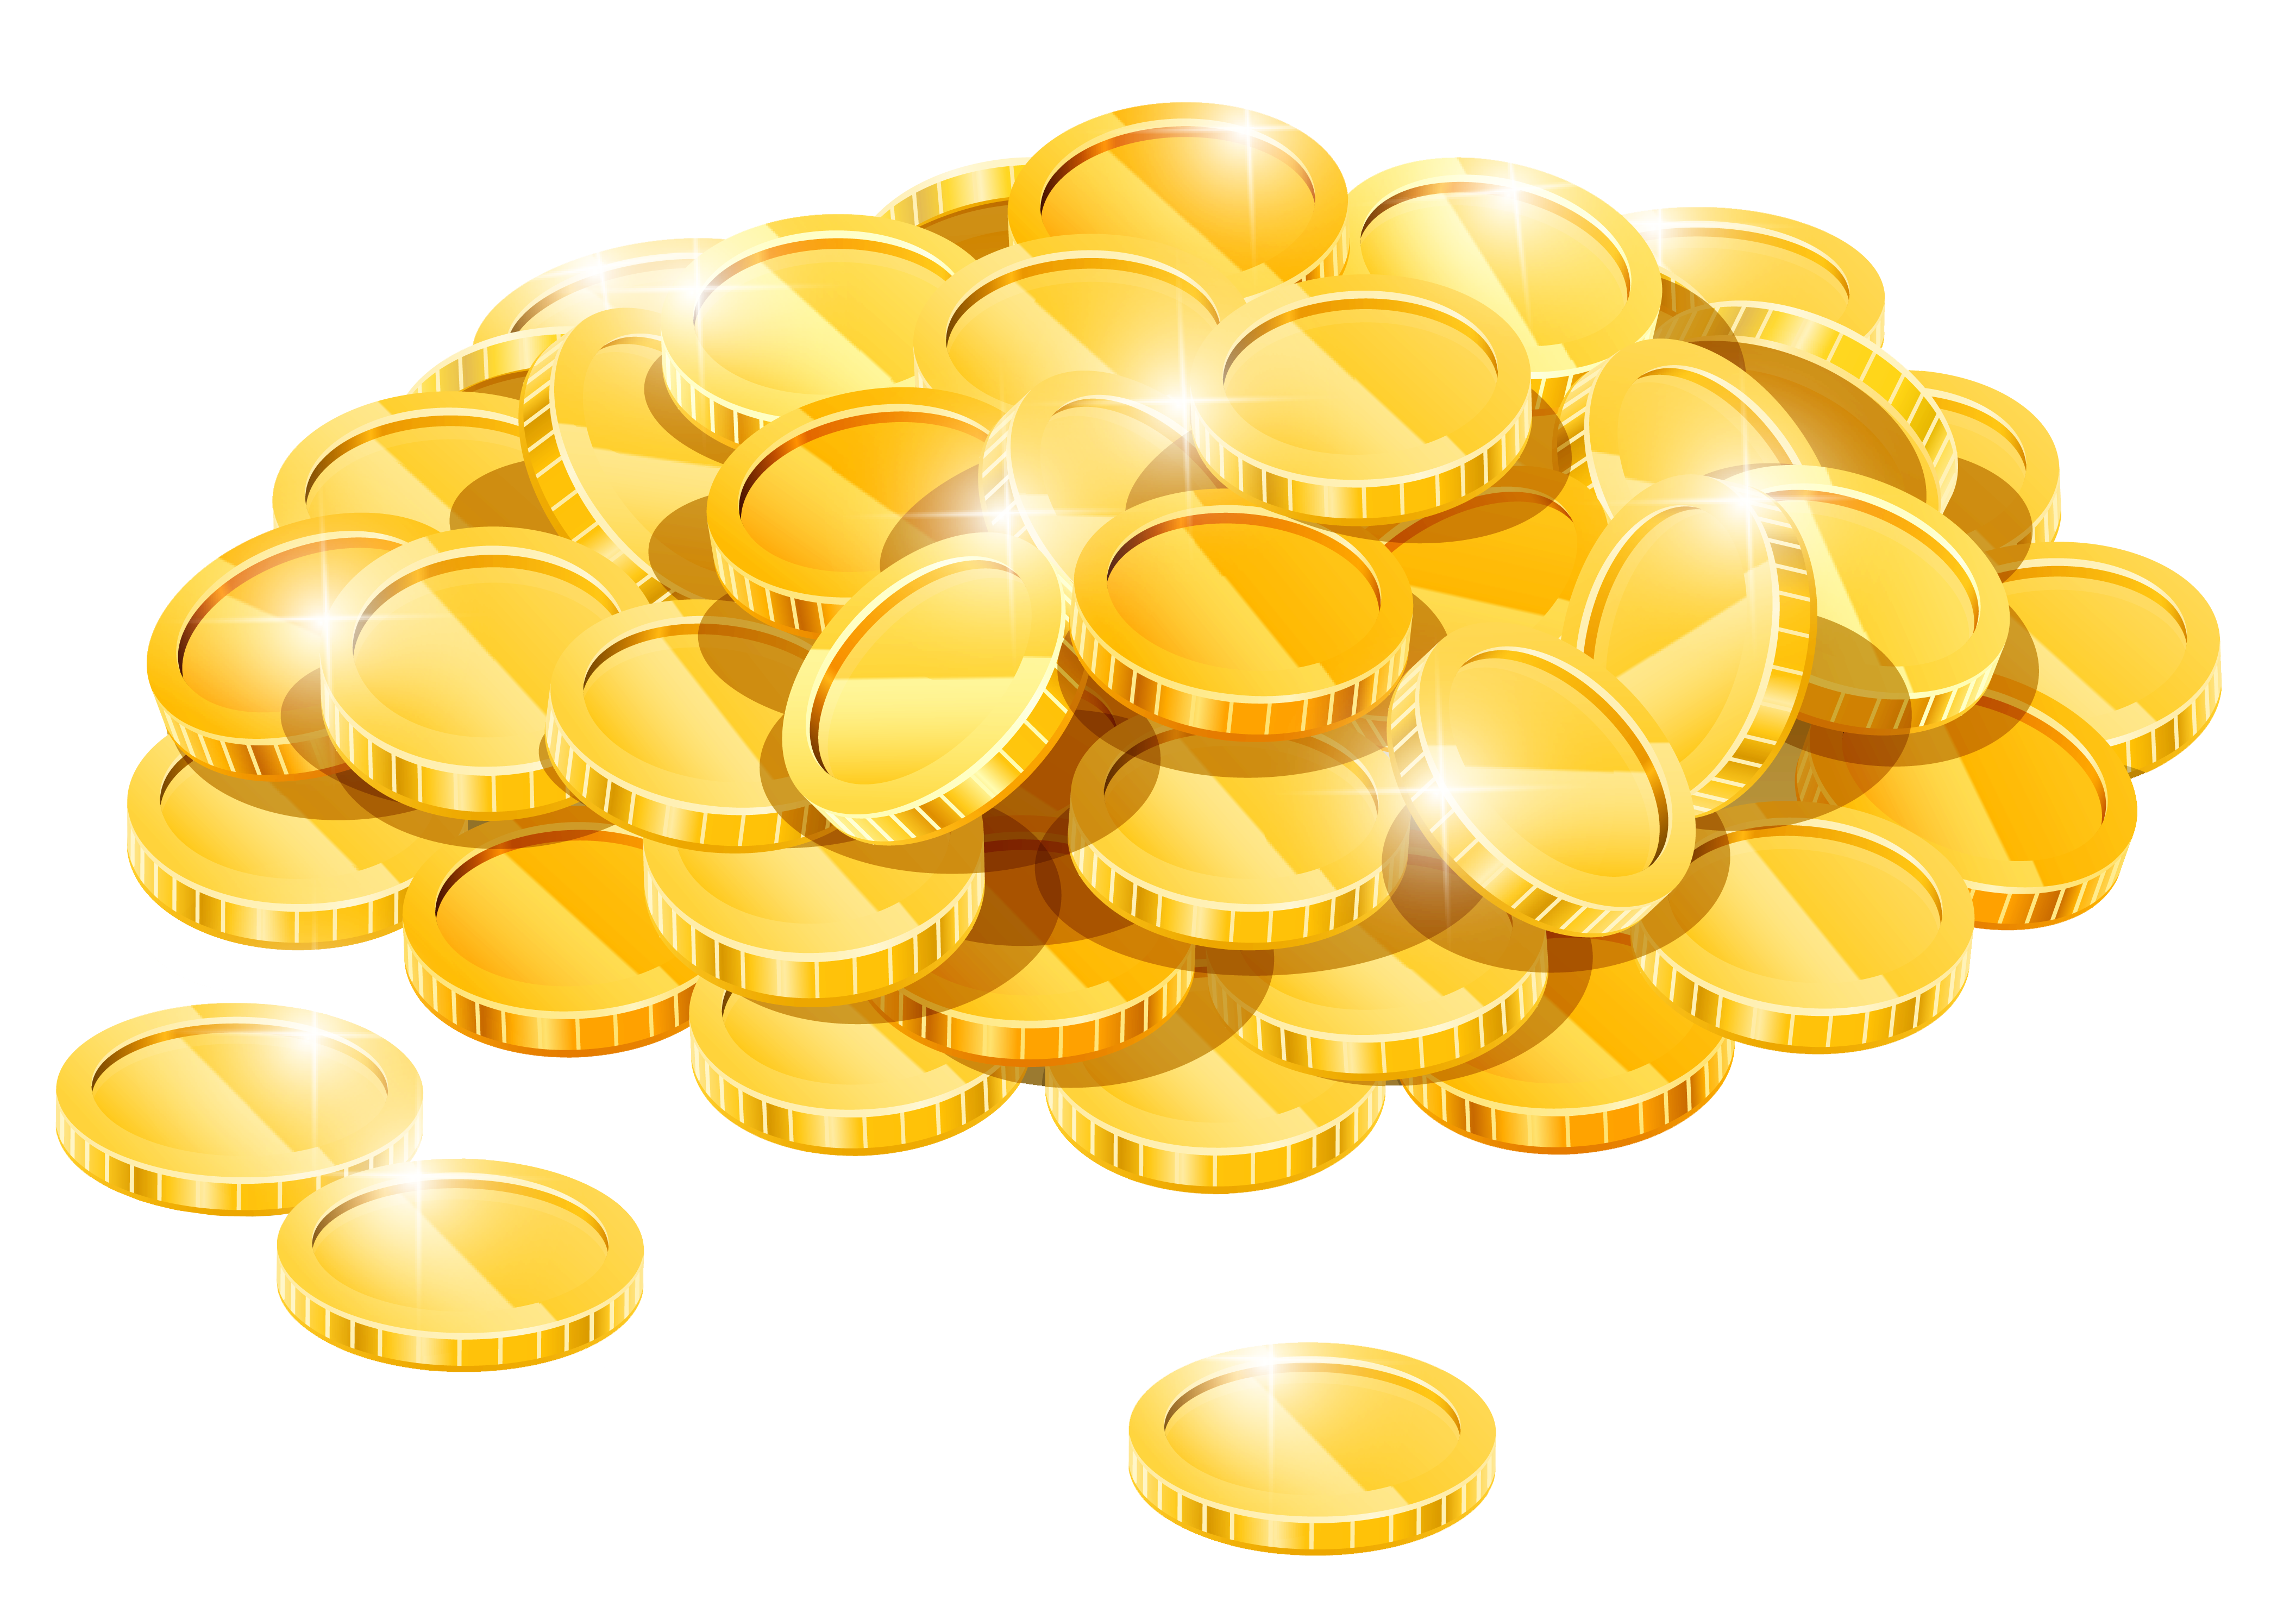 Coin clipart lot money. Gold coins pile png